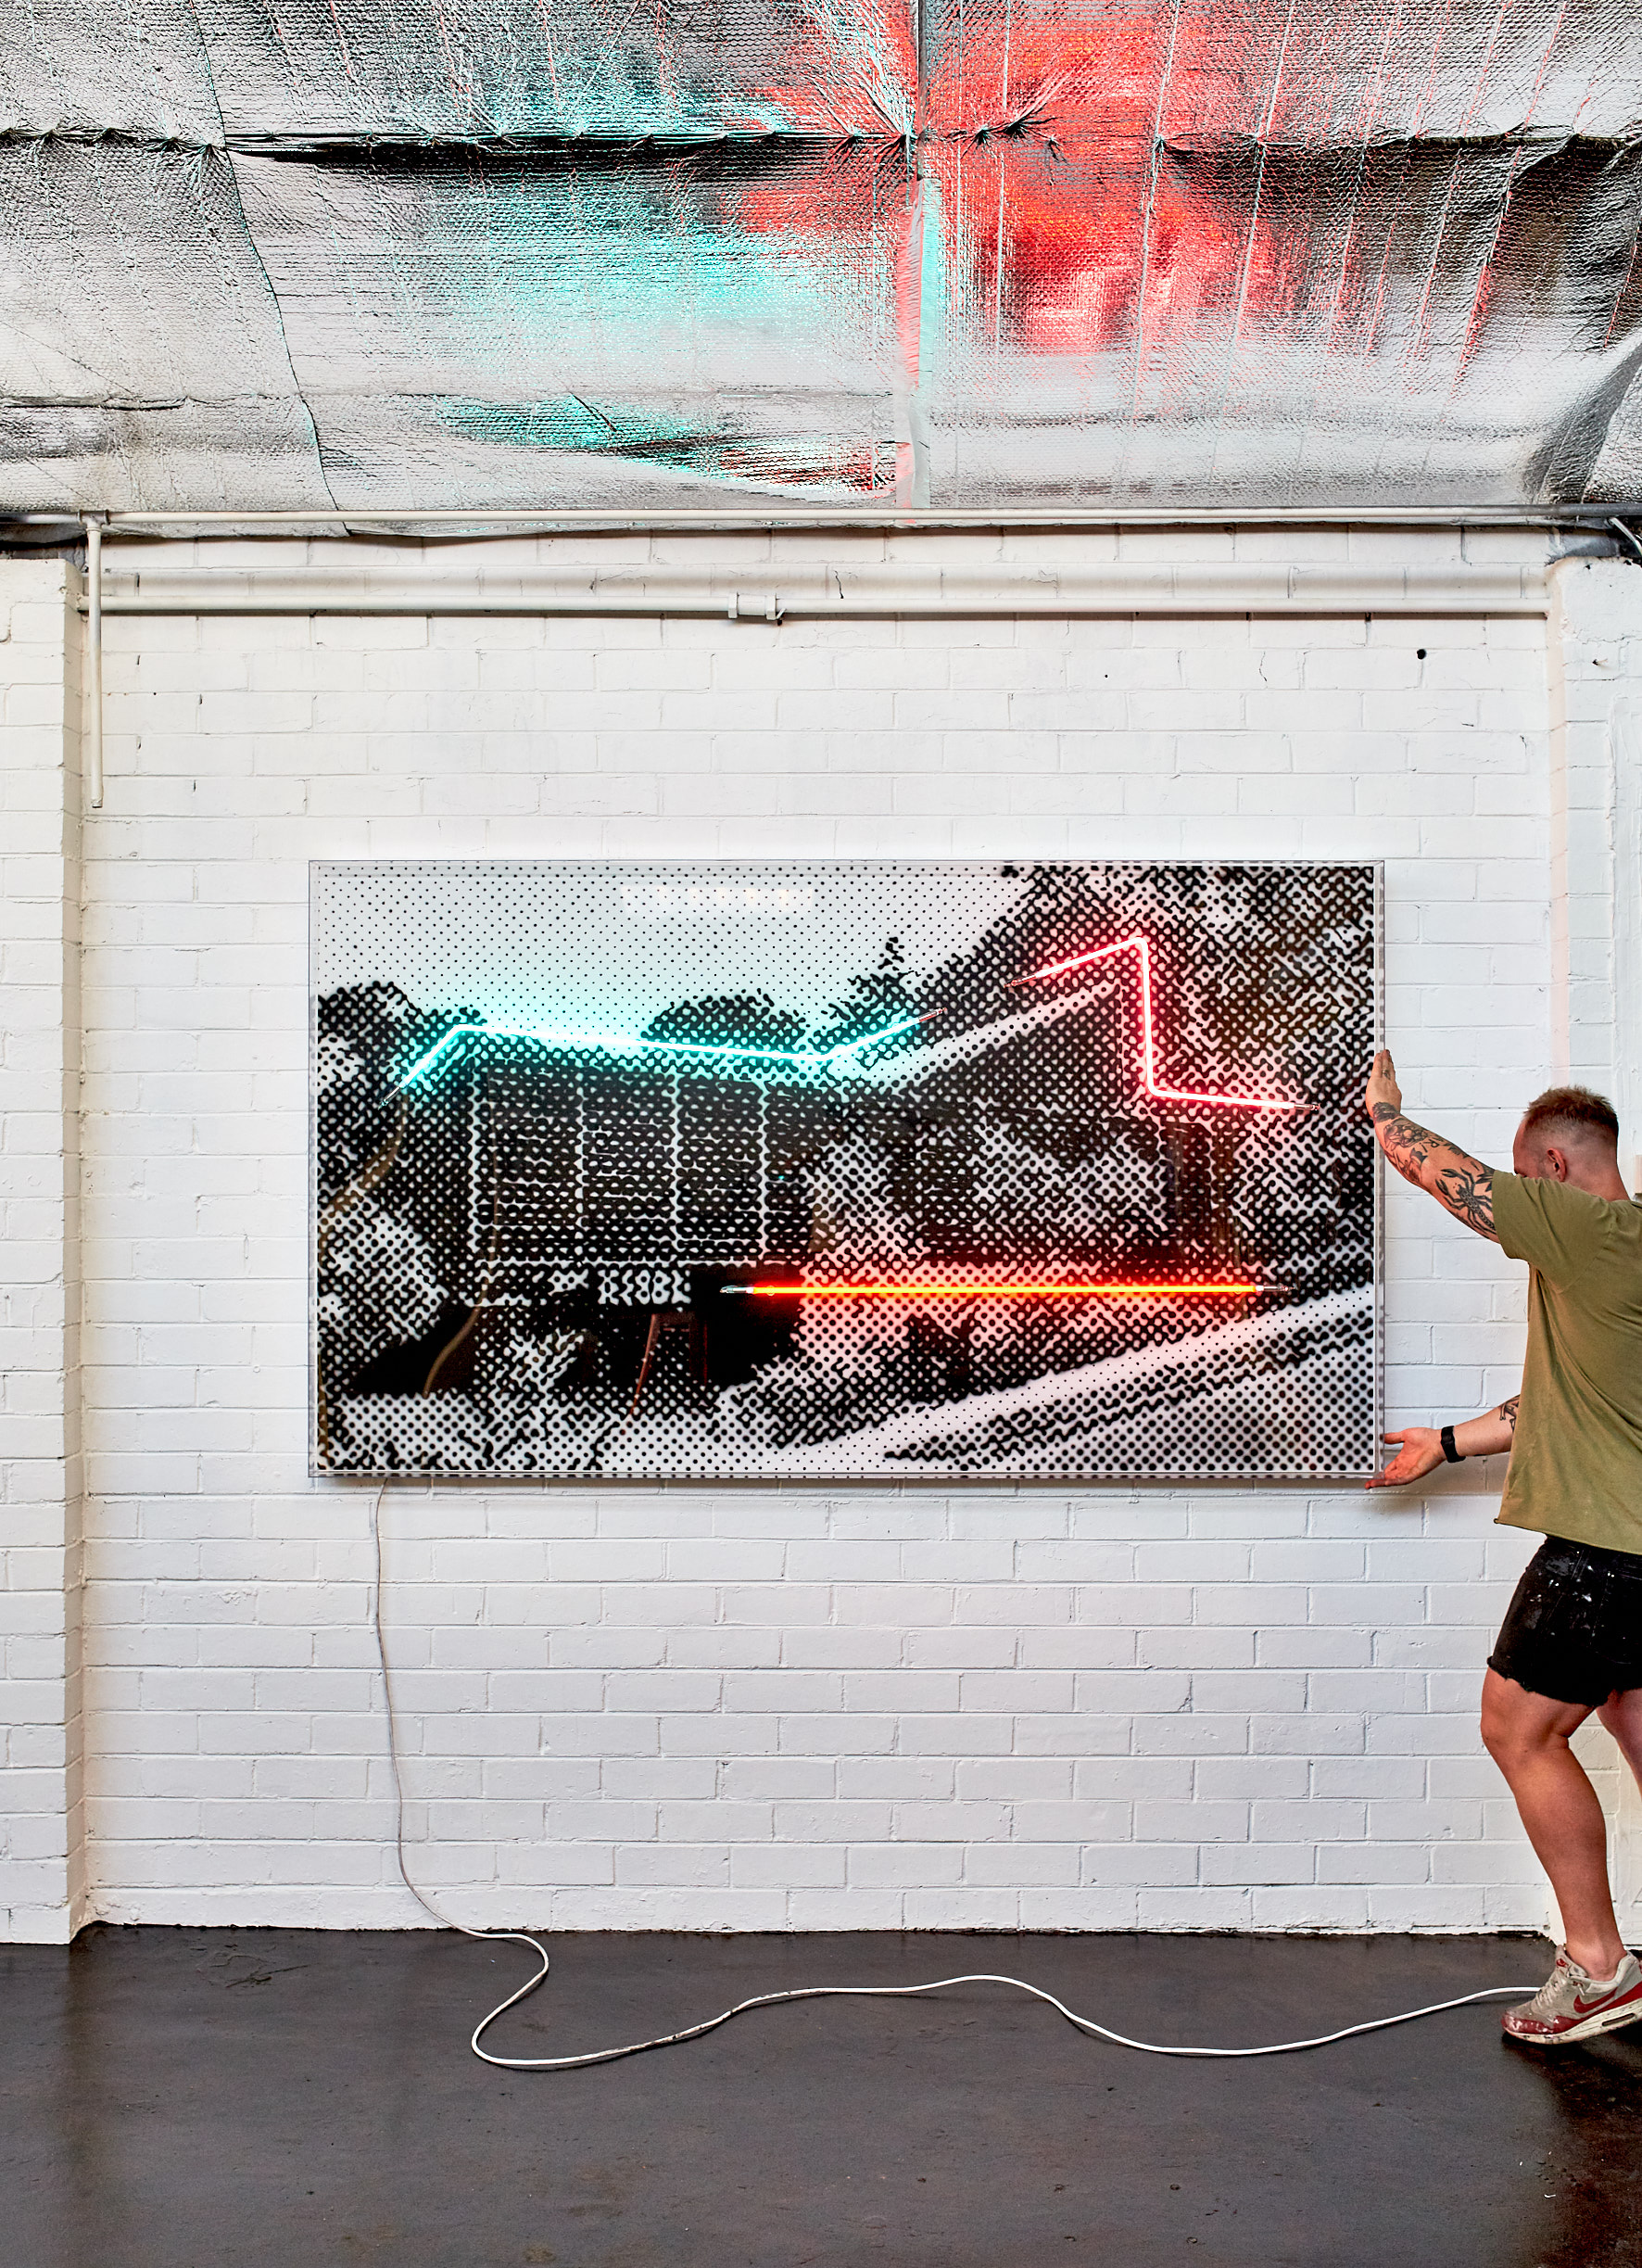 Yarra St House, 2019  Airbrush polymer and neon on Dibond, Acrylic frame 120x200cm